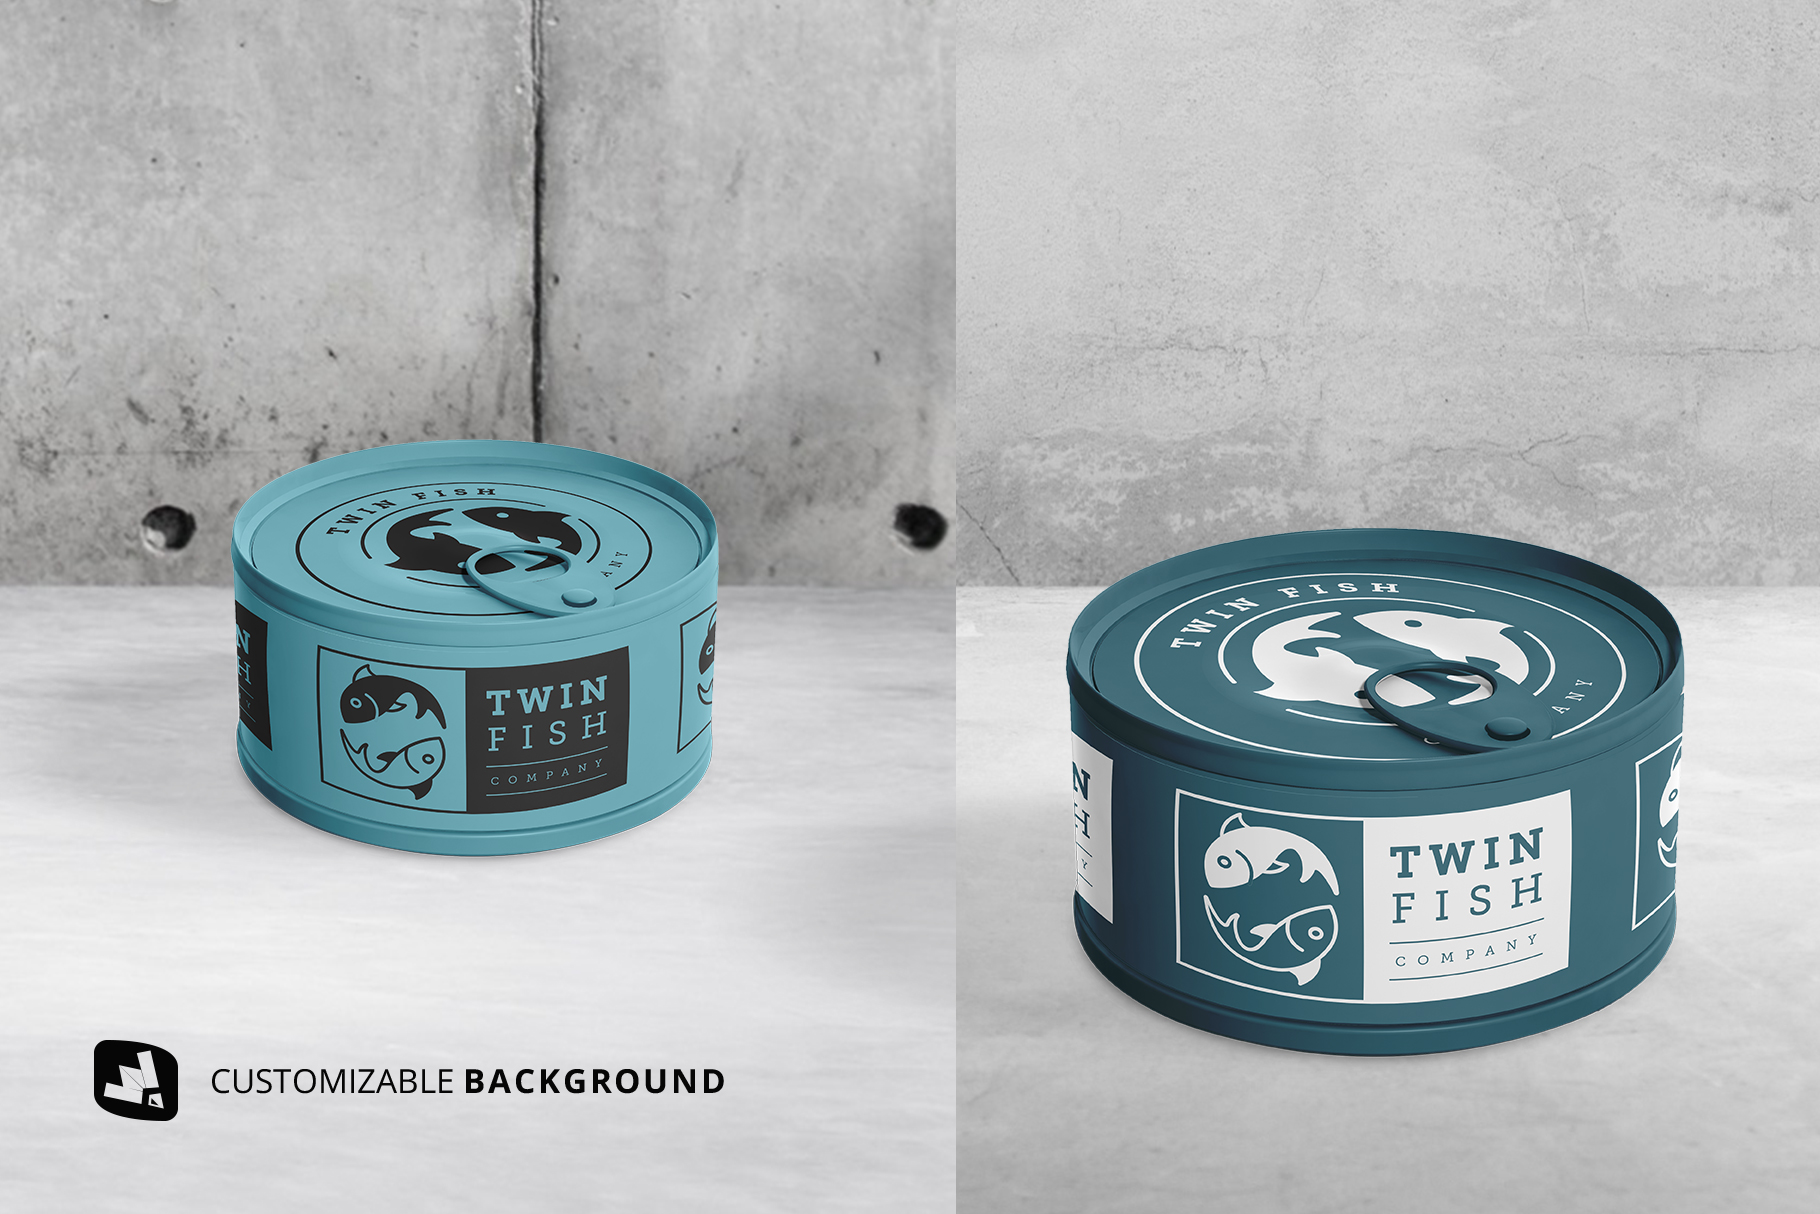 background options of the circular canned food packaging mockup